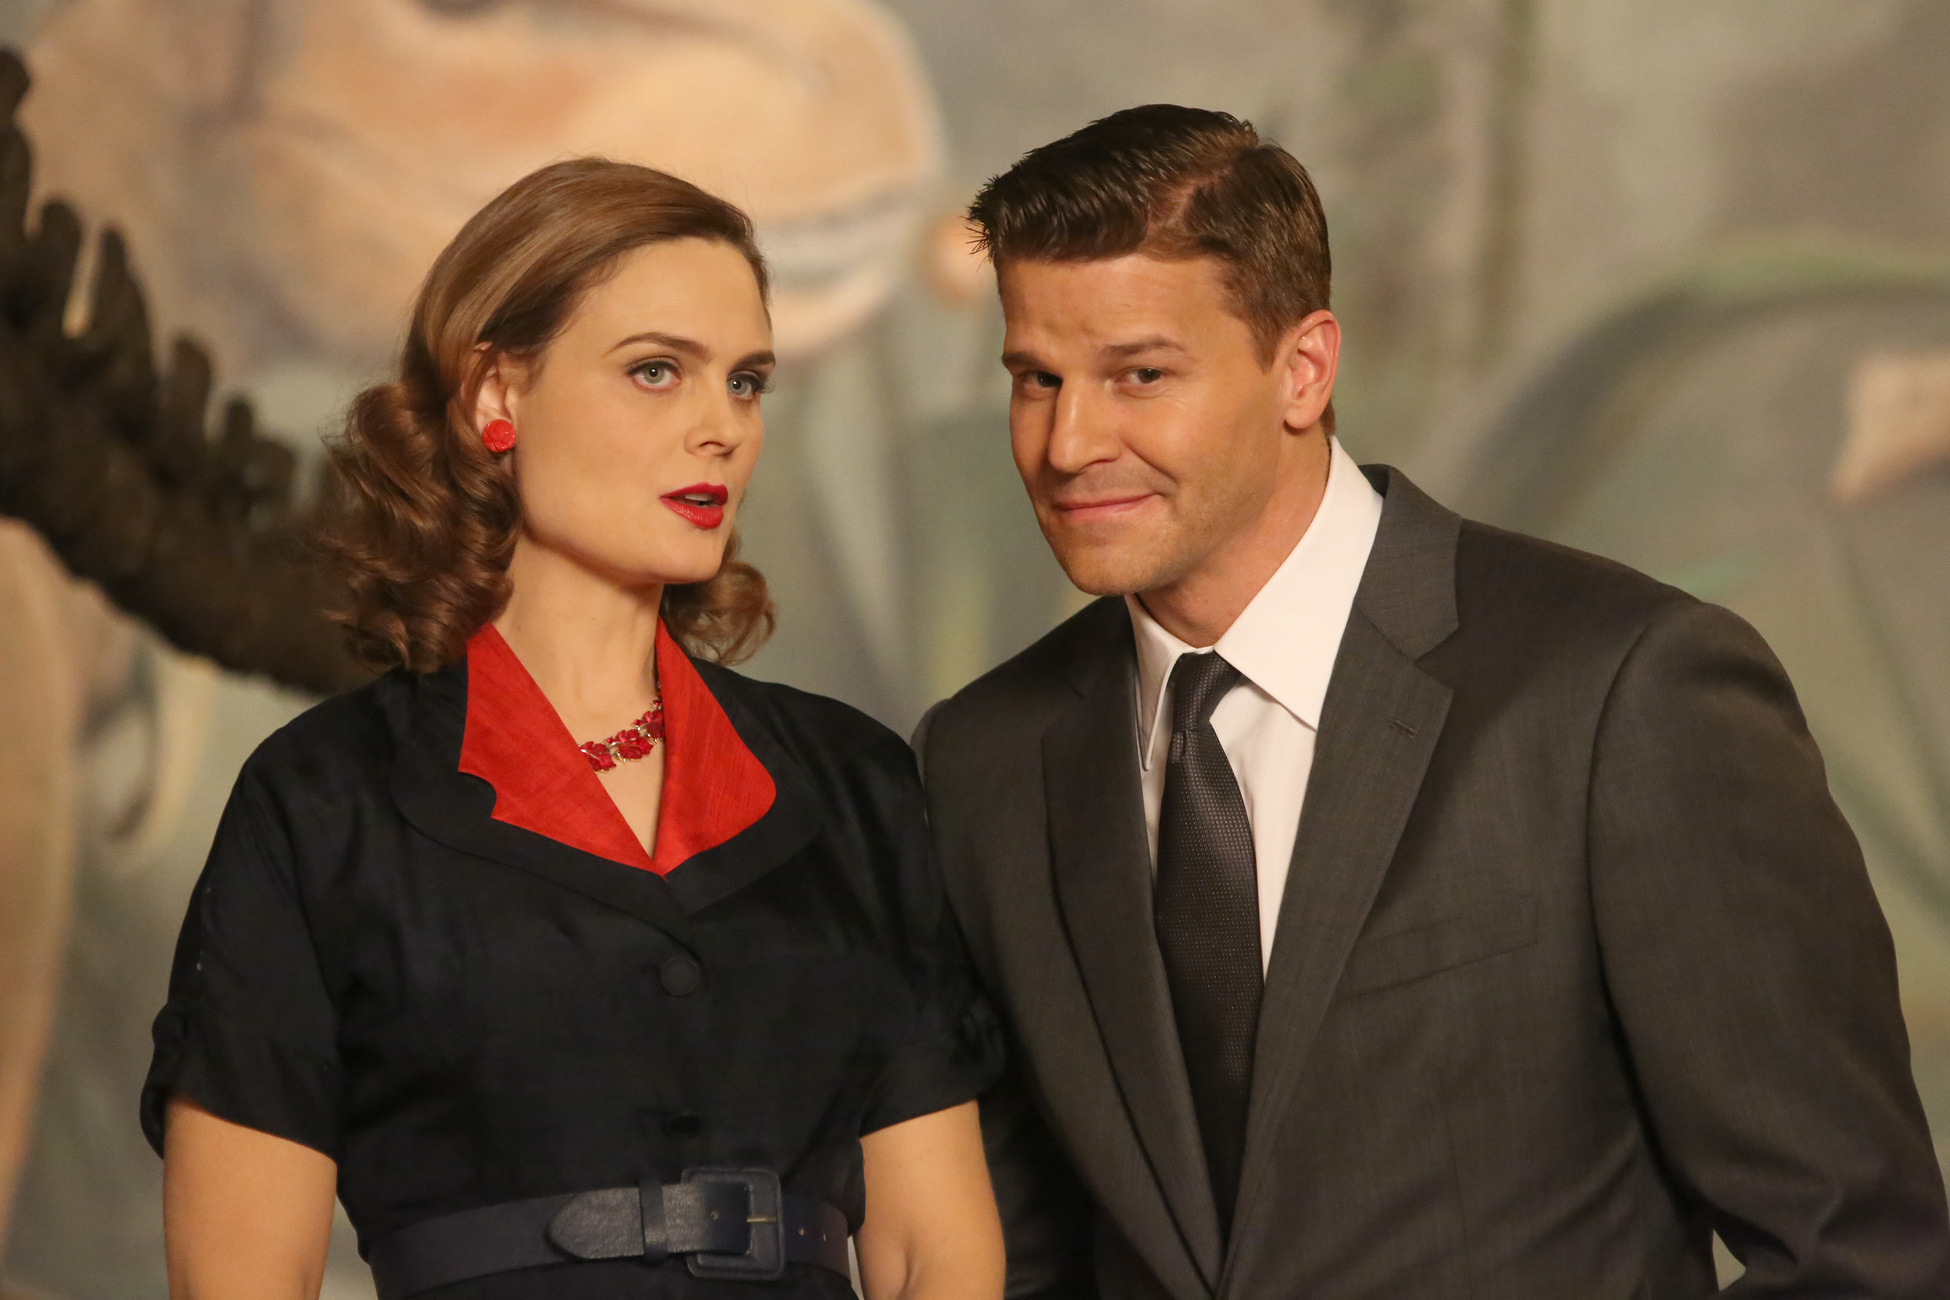 Bones - 200th Episode - Our hand painted drop was wall mounted on set and featured in a pivotal scene in the highly acclaimed television series.